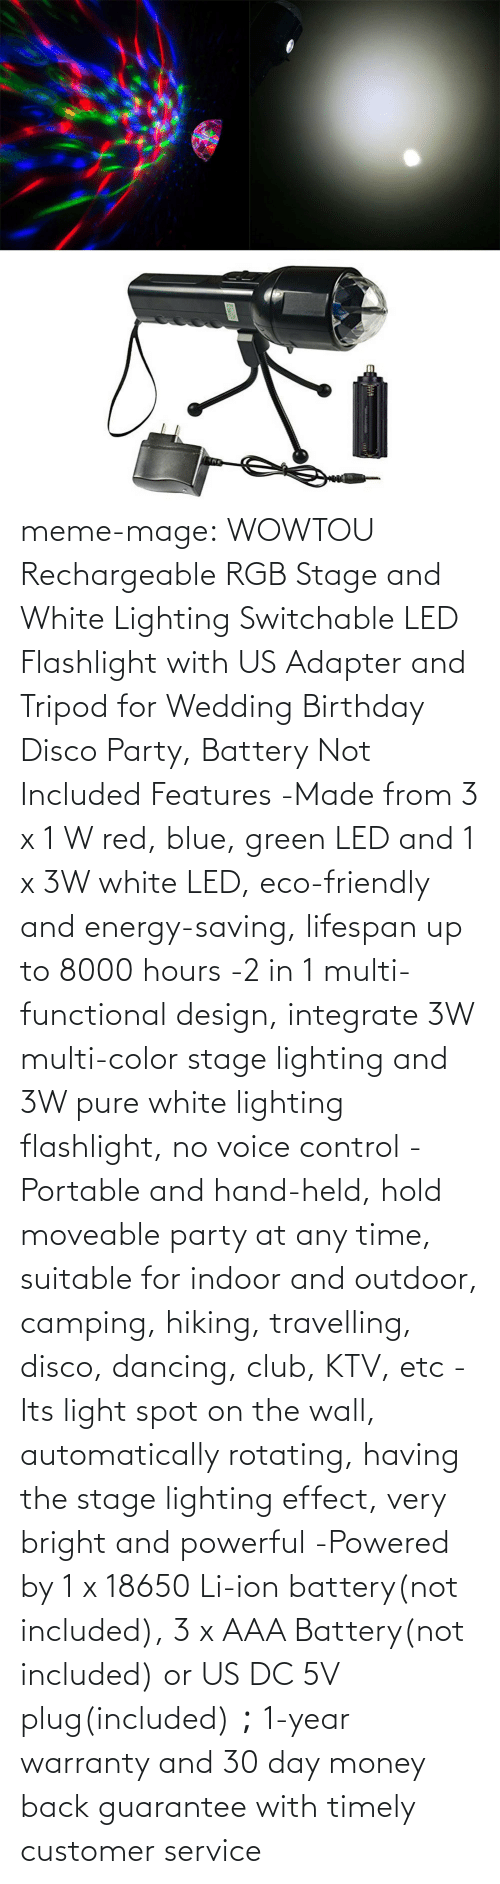 Lifespan: meme-mage:  WOWTOU Rechargeable RGB Stage and White Lighting Switchable LED Flashlight with US Adapter and Tripod for Wedding Birthday Disco Party, Battery Not Included Features -Made from 3 x 1 W red, blue, green LED and 1 x 3W white LED, eco-friendly and energy-saving, lifespan up to 8000 hours -2 in 1 multi-functional design, integrate 3W multi-color stage lighting and 3W pure white lighting flashlight, no voice control -Portable and hand-held, hold moveable party at any time, suitable for indoor and outdoor, camping, hiking, travelling, disco, dancing, club, KTV, etc -Its light spot on the wall, automatically rotating, having the stage lighting effect, very bright and powerful -Powered by 1 x 18650 Li-ion battery(not included), 3 x AAA Battery(not included) or US DC 5V plug(included);1-year warranty and 30 day money back guarantee with timely customer service